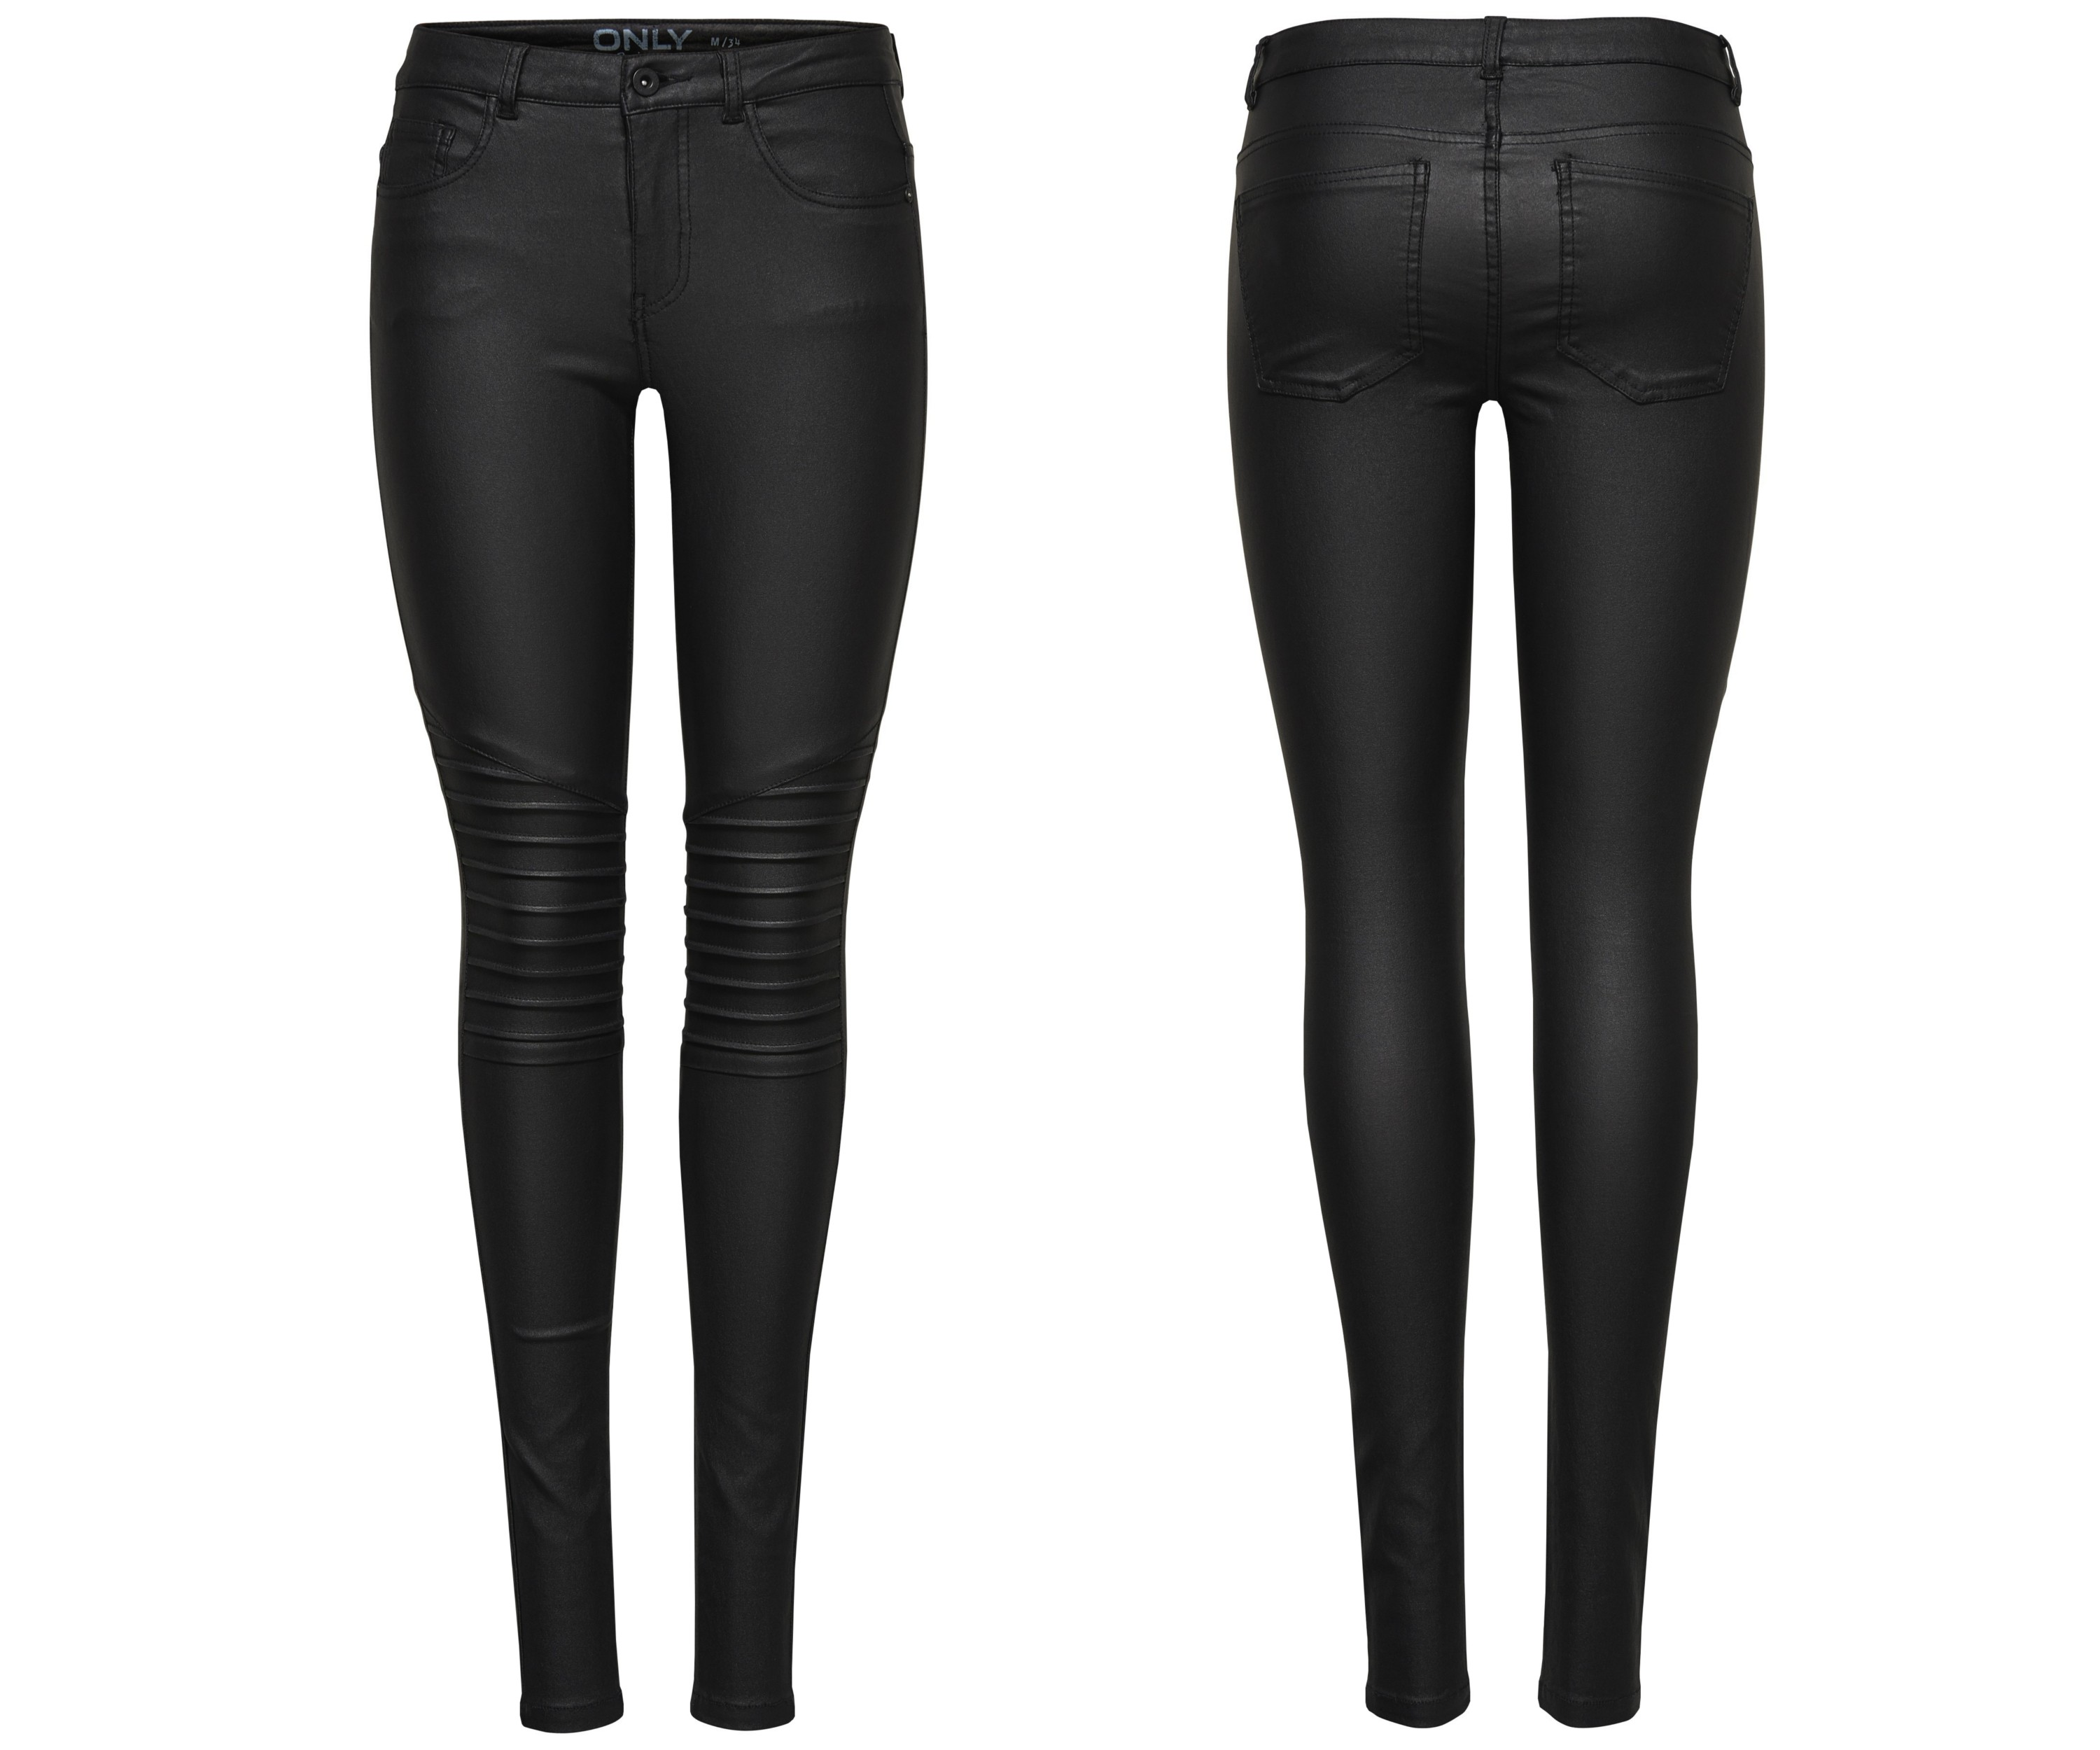 5fd2497bed7edc ONLY Damen Hose Jeans Leggings onlNEW ROYAL REG SK. BIKER COATED NOOS  schwarz